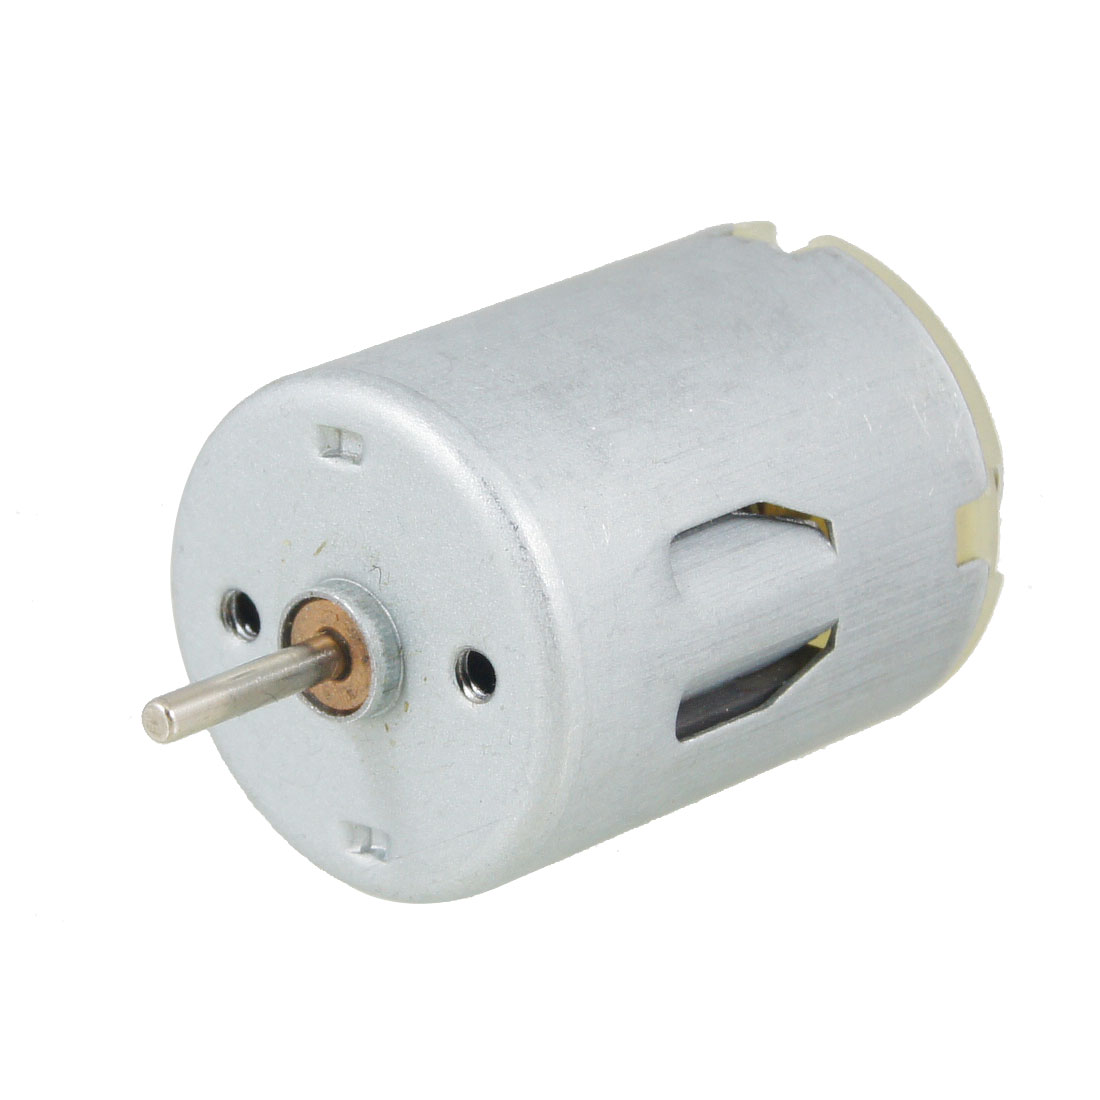 7800RPM DC 12V 2mm Shaft Diameter 2 Terminals Electric Micro Motor